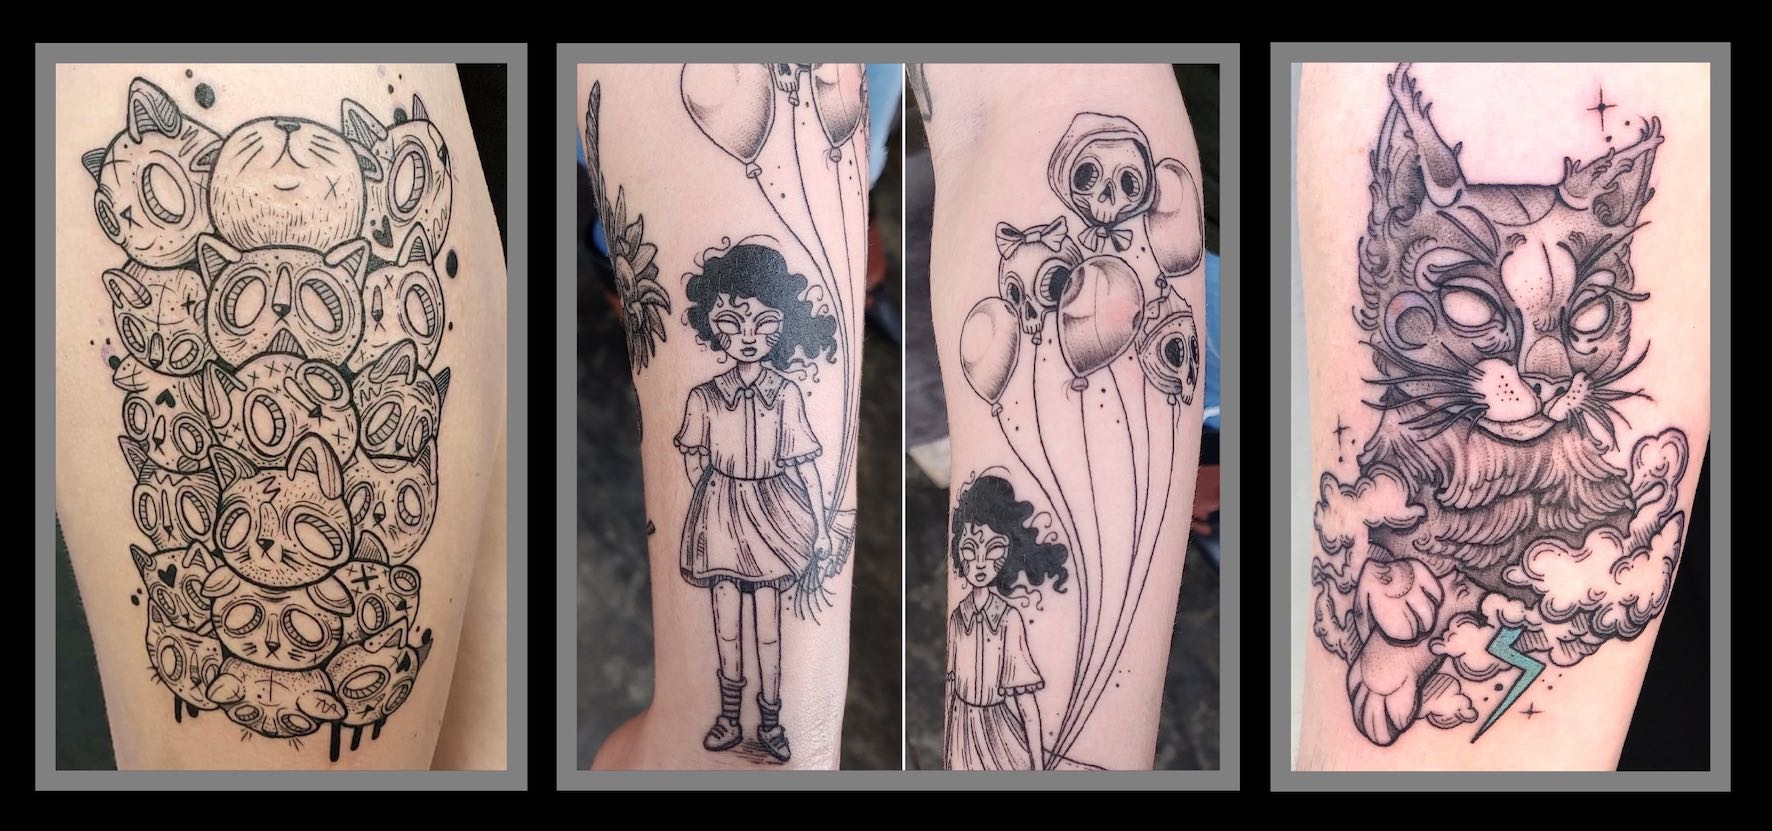 Illustrative tattoos done by Roxy Rose of Fallen Heroes